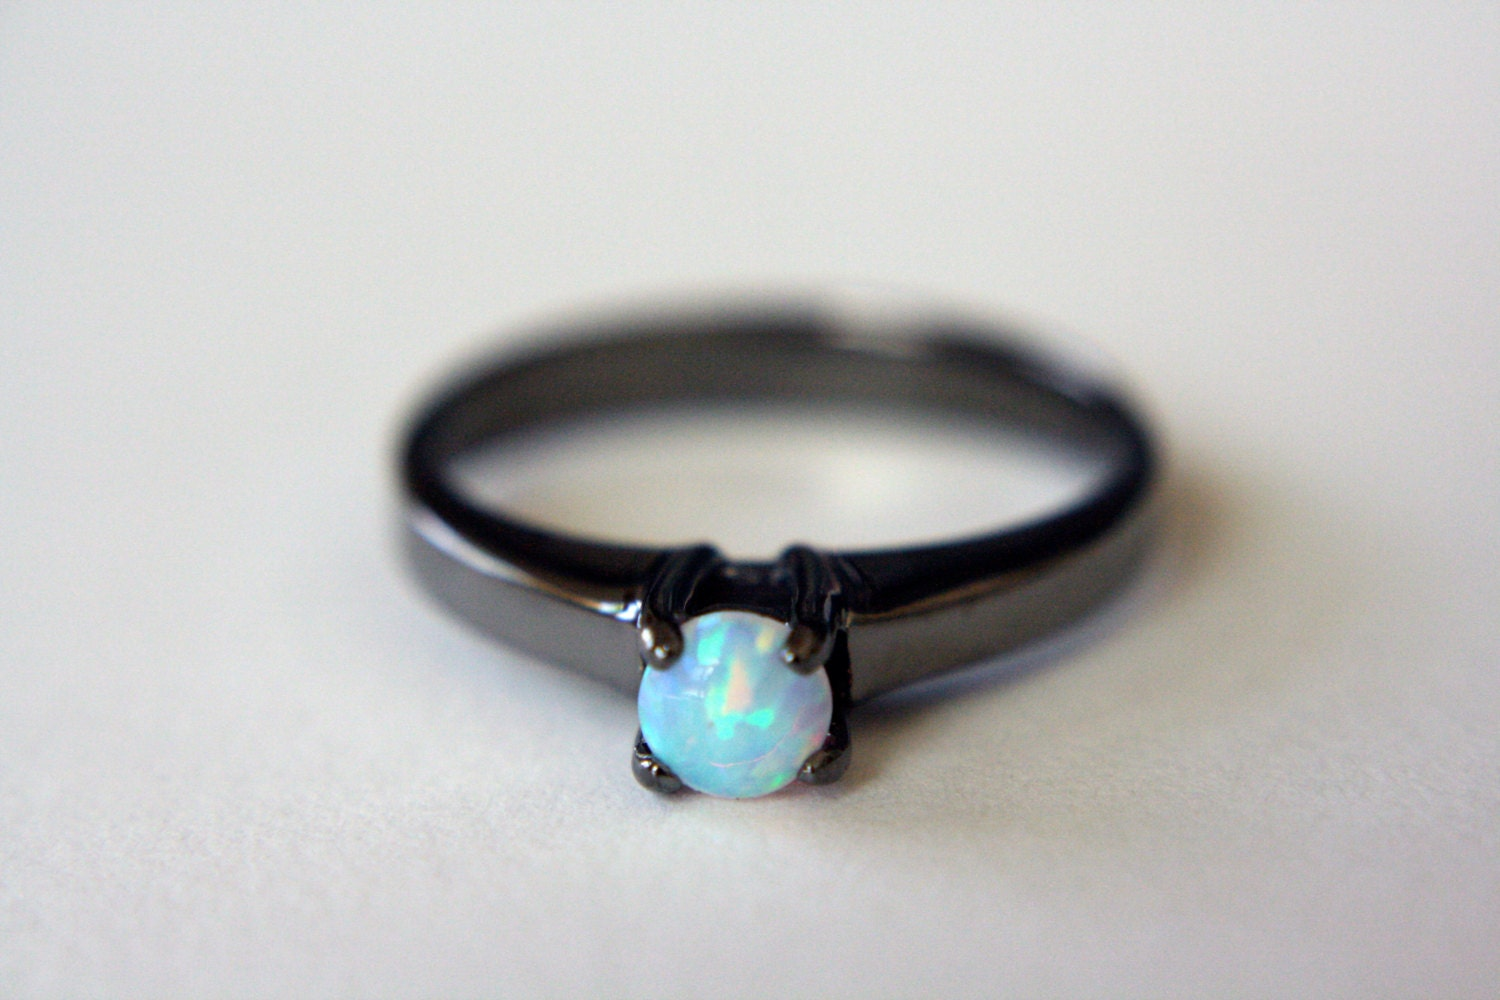 ct black engagement country in handcrafted opal custom your sale ring savingsoff rings